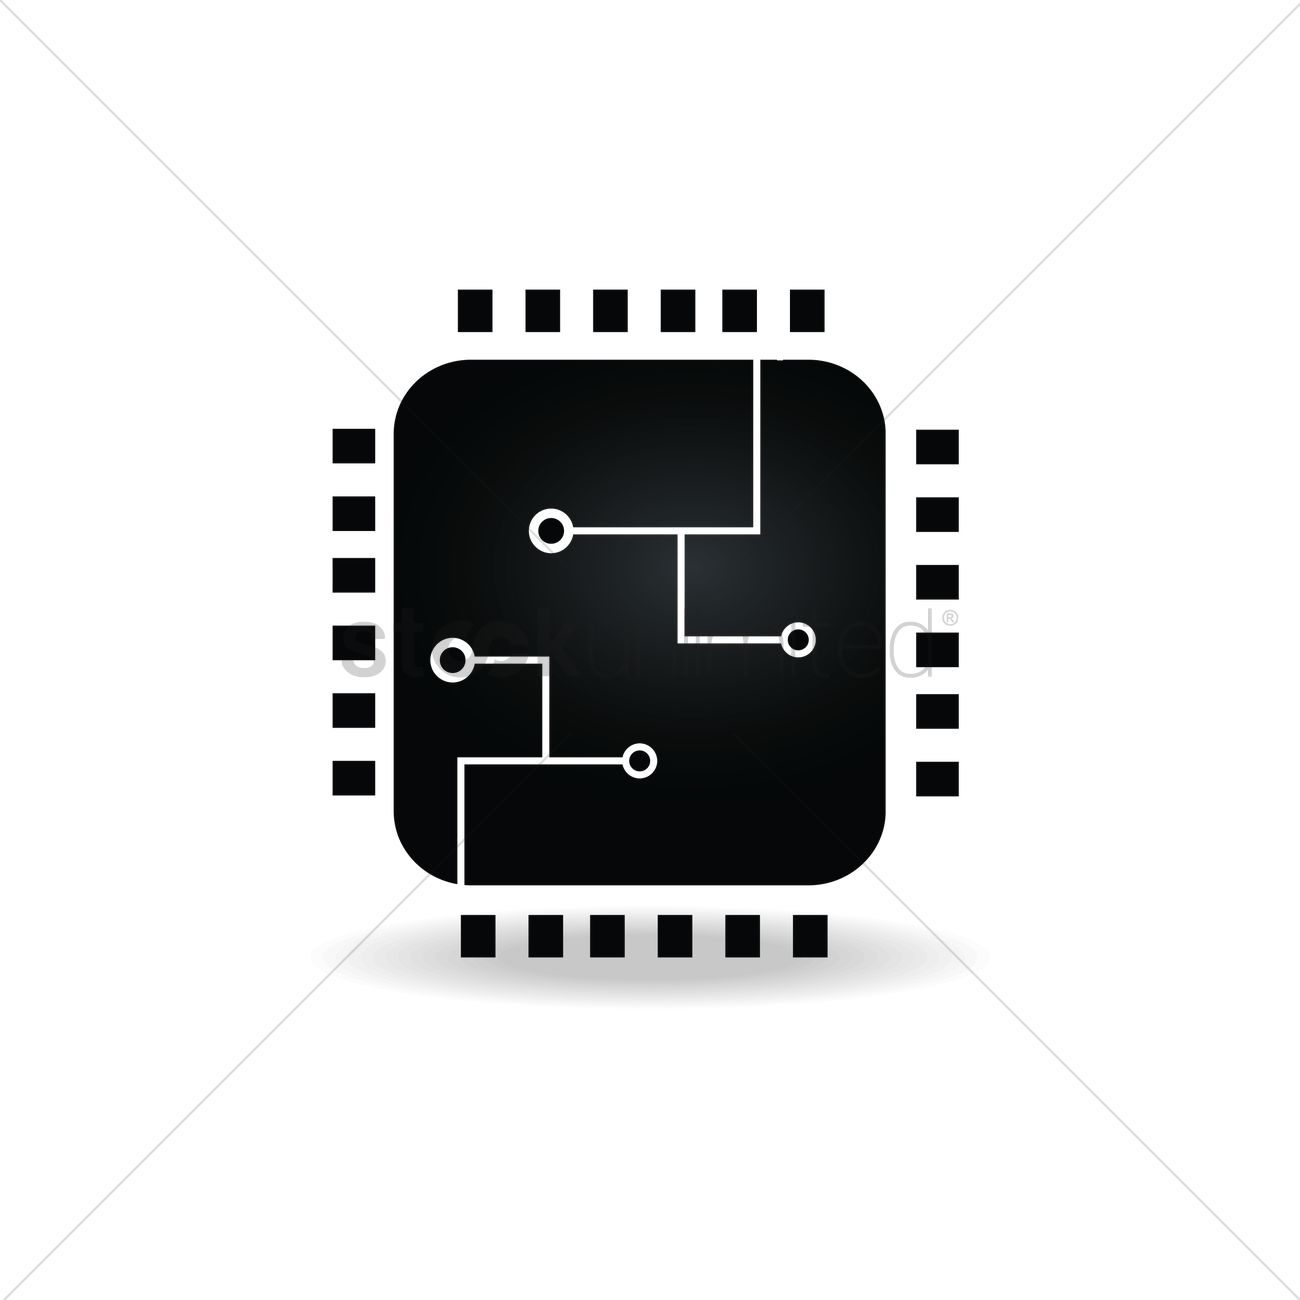 Circuit Board Icon Vector Image 1943310 Stockunlimited Royalty Free Clip Art Simple Drawing Of A Graphic